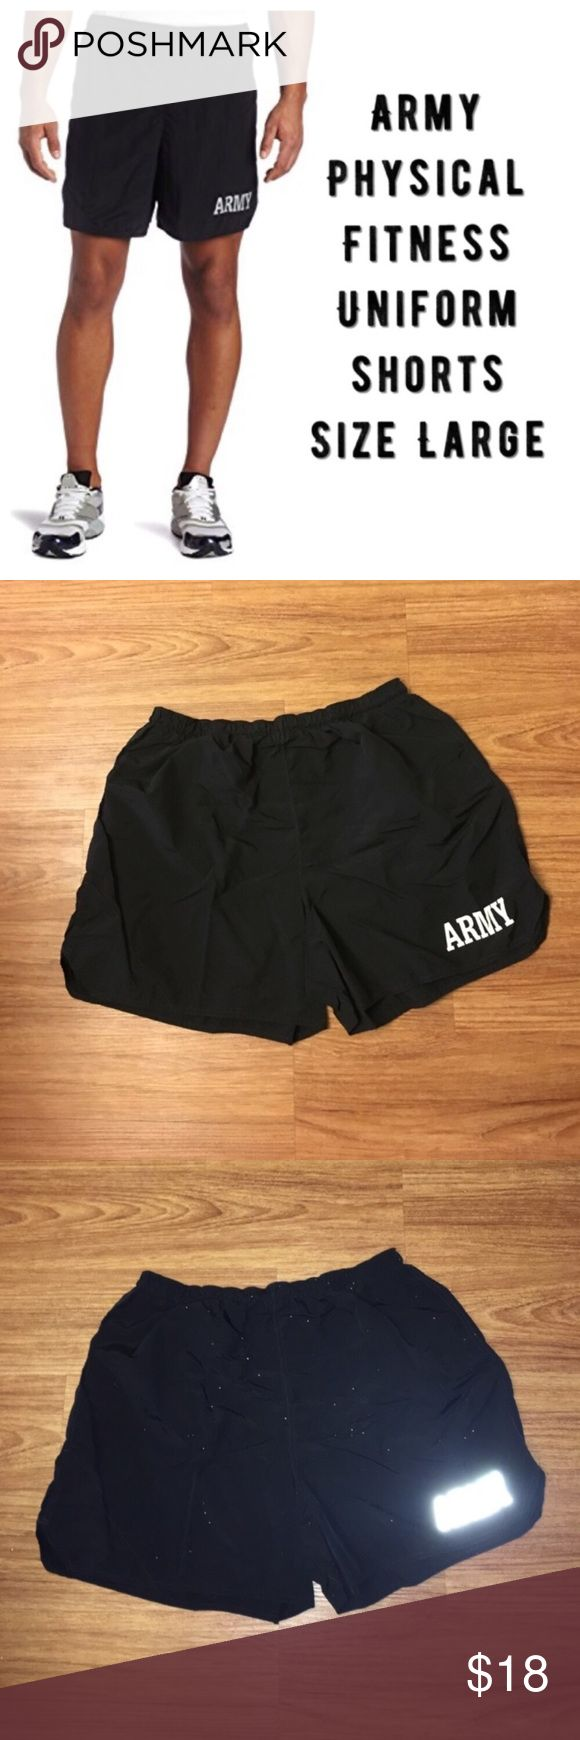 "Army Physical Fitness shorts: all 5 are size Large Same day shipping (as long as P.O. is open for business). ❤ Measurements are approximate. Descriptions are accurate to the best of my knowledge.  Price FIRM (unless bundled). Price is for ONE pair. All size large. No inner tags. They are a synthetic blend. Front: ARMY reflective. No holes/stains. Smoke/pet free home. Flat measurements: 15"" across waist, 5"" inseam. Inner drawstring, small inner waist pocket, ID card pocket outside of right…"